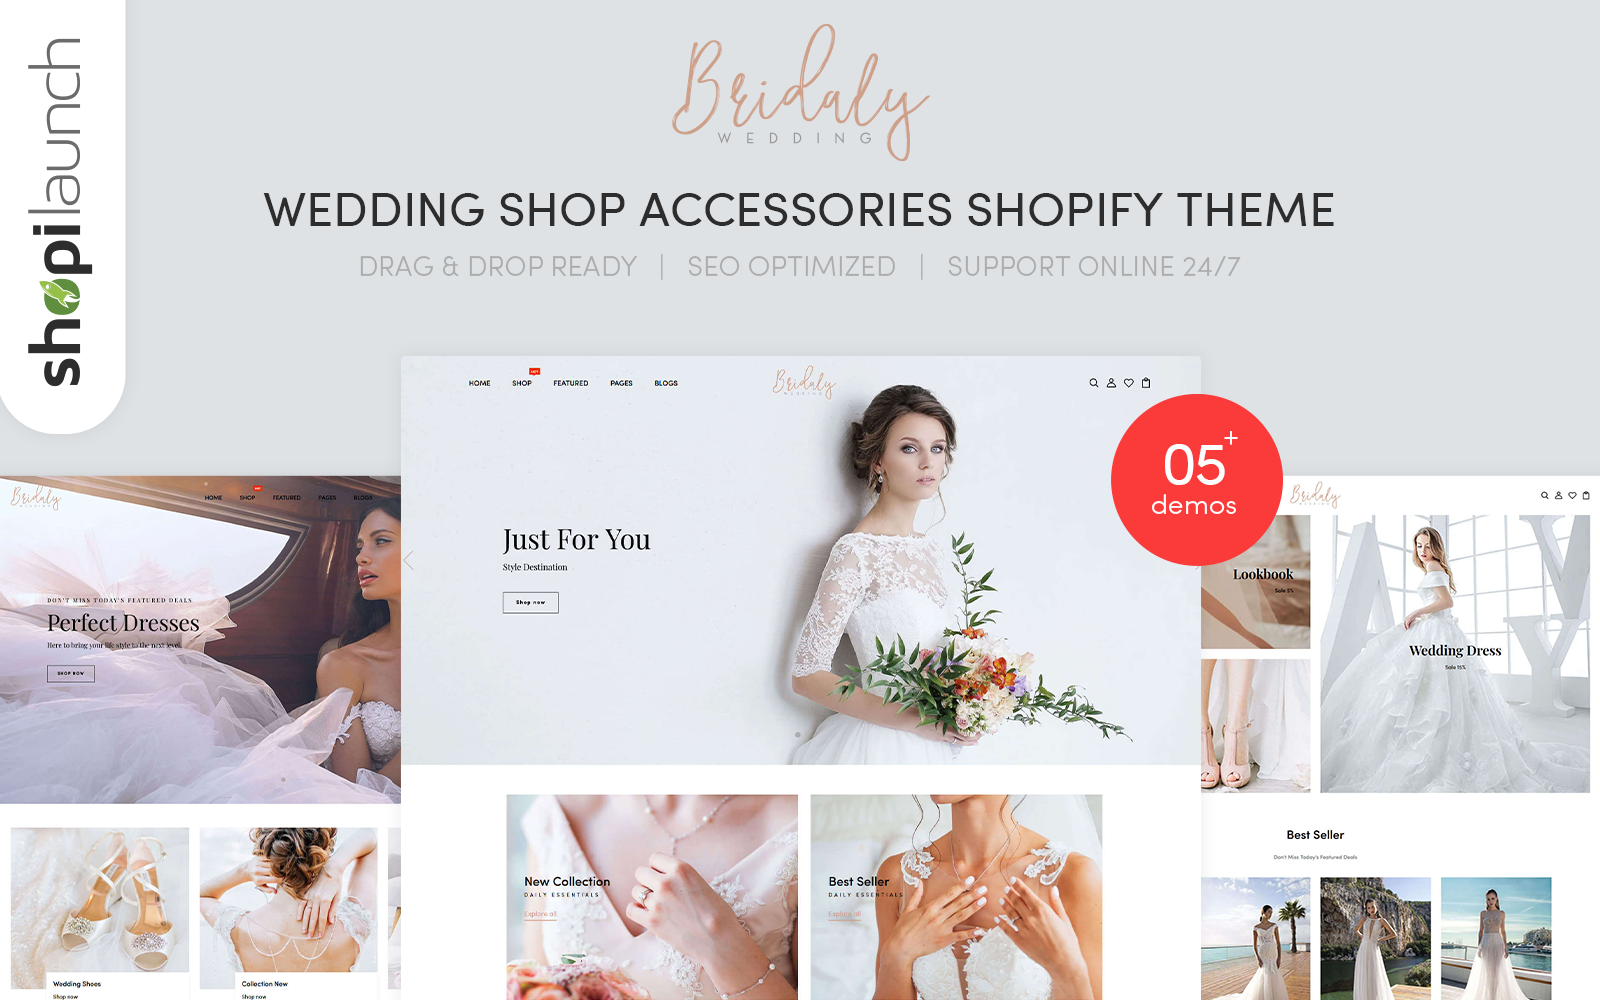 Bridaly - Wedding Shop Accessories Responsive Shopify Theme